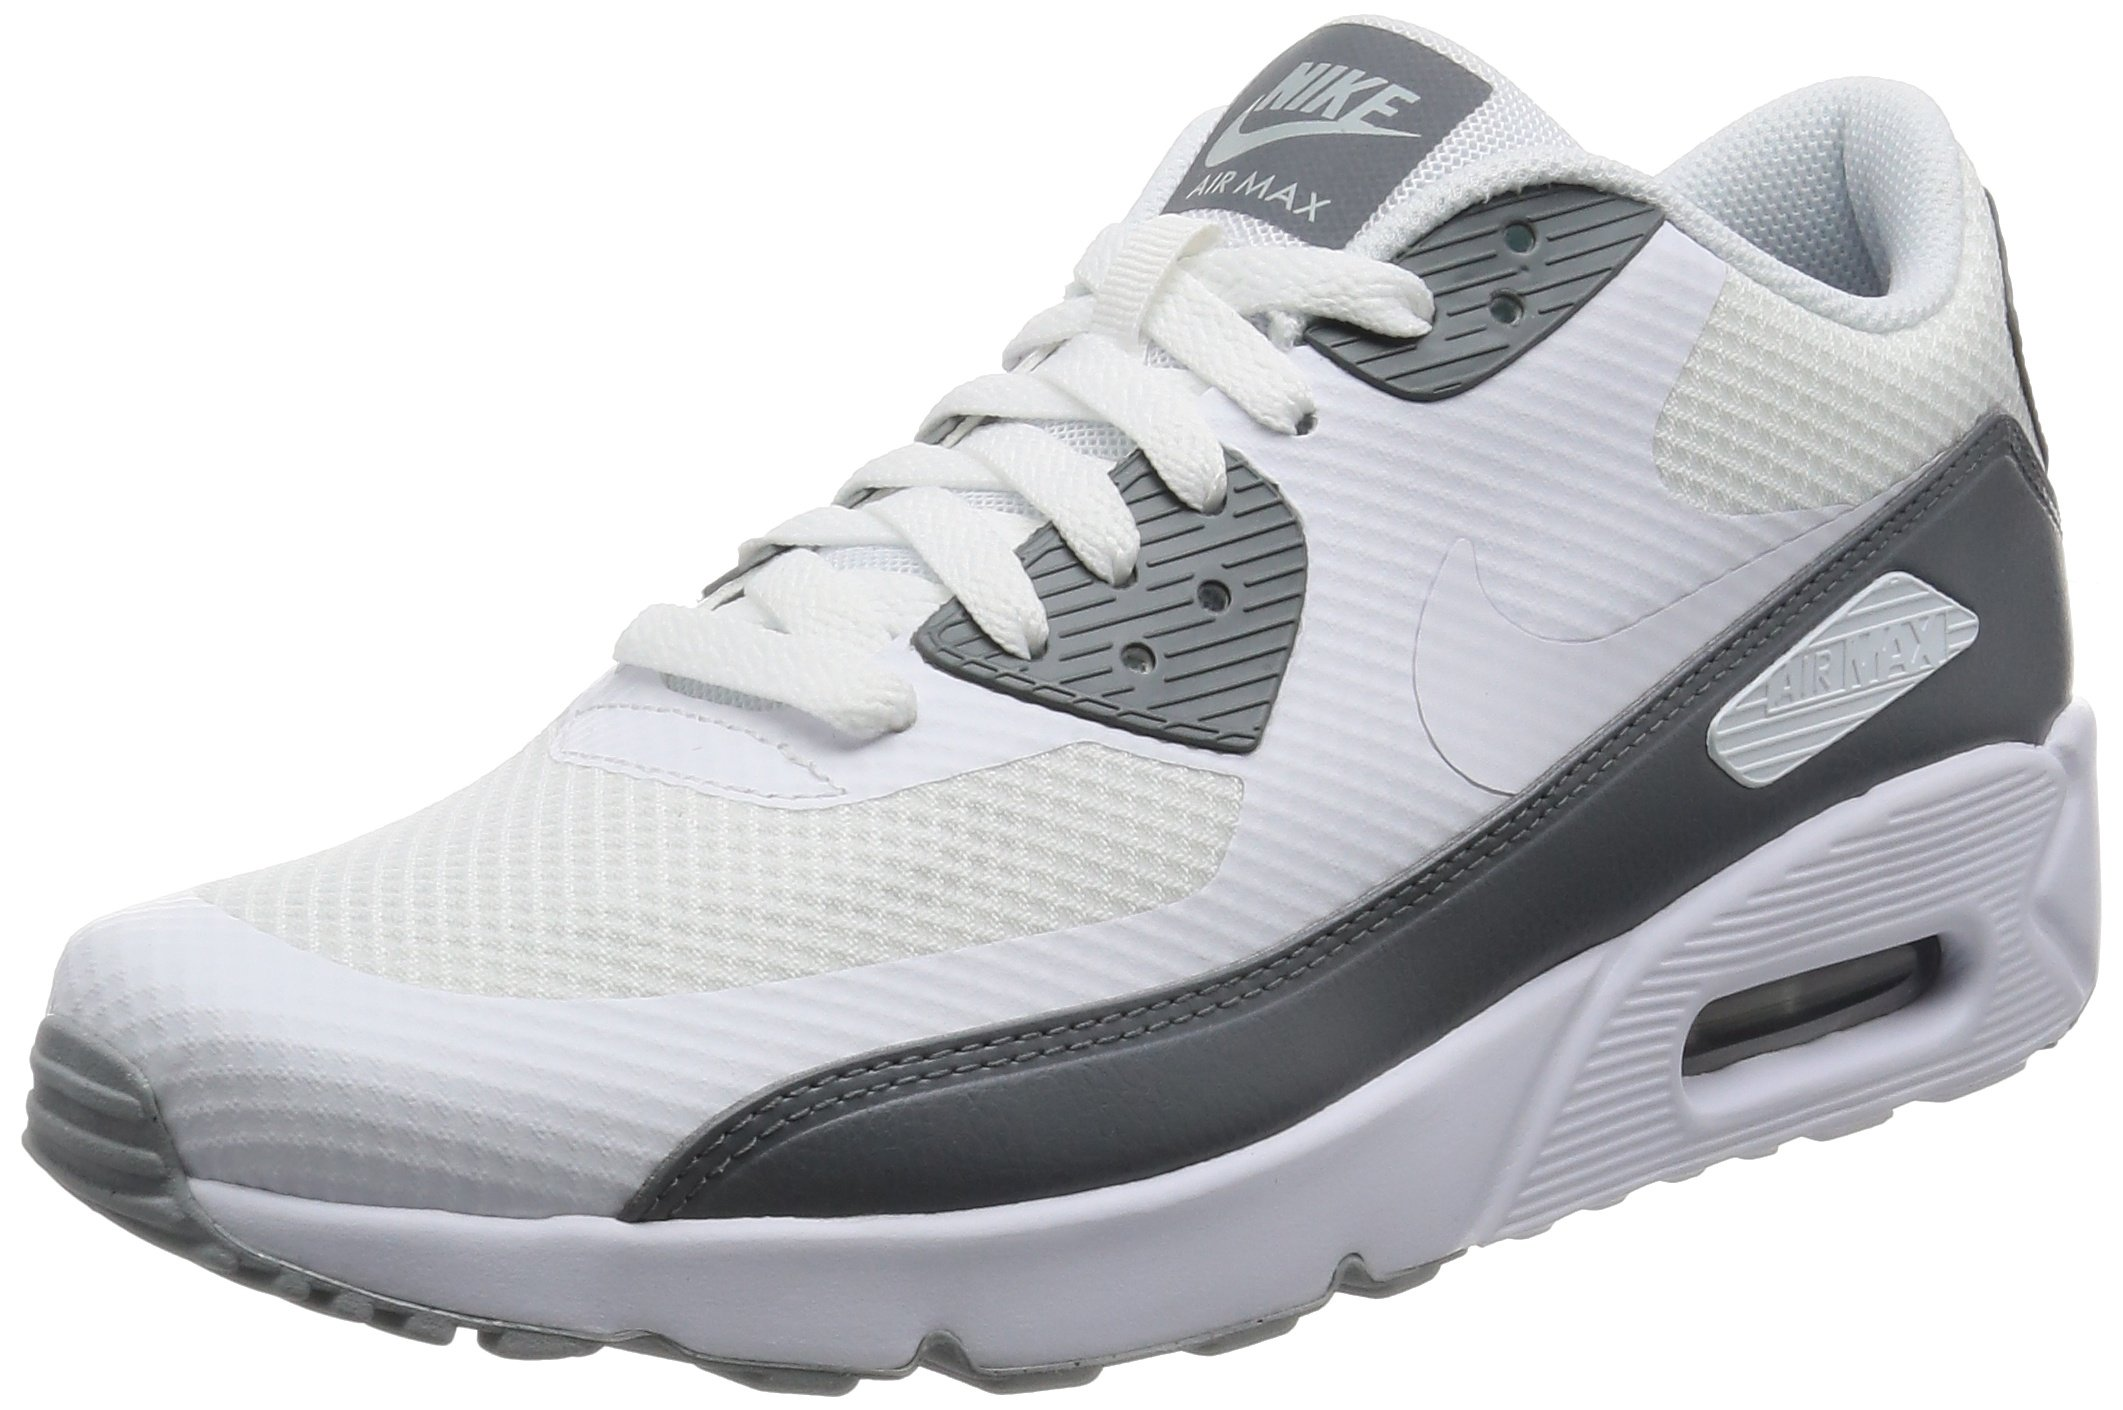 cf2313ee5a6eb NIKE Men's Air Max 90 Ultra 2.0 Essential, White/White-Cool Grey, 9.5 M US